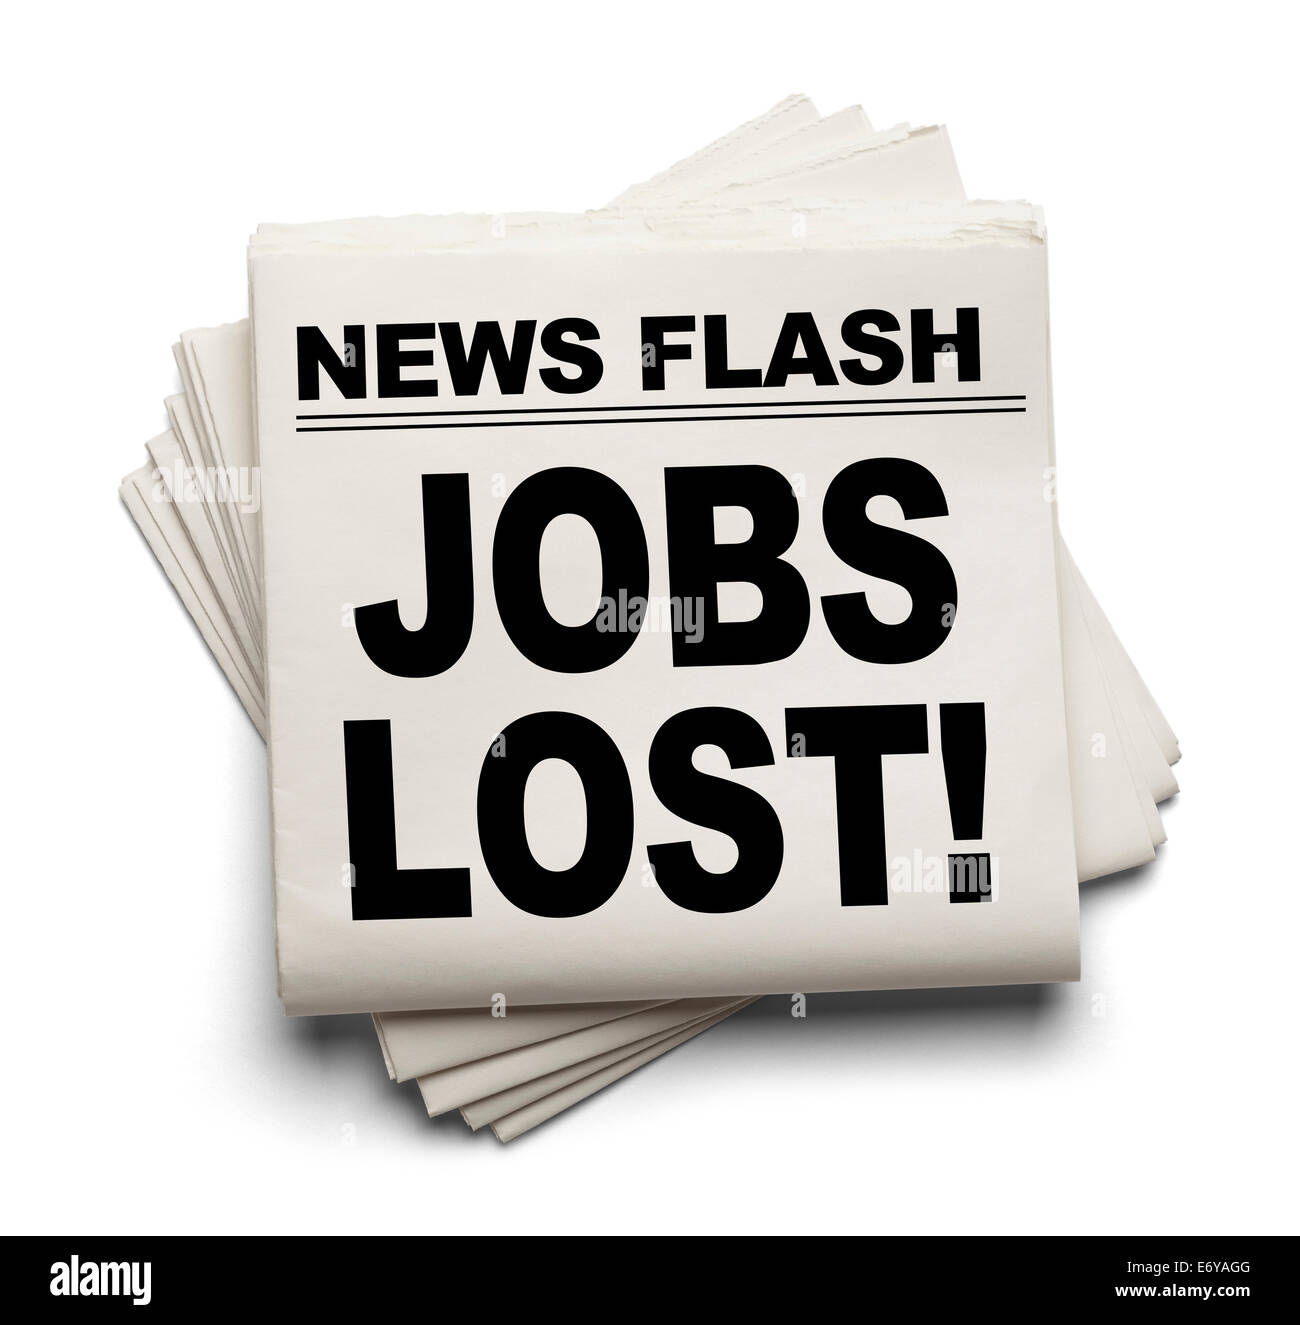 News Flash Jobs Lost News Paper Isolated on White Background. - Stock Image